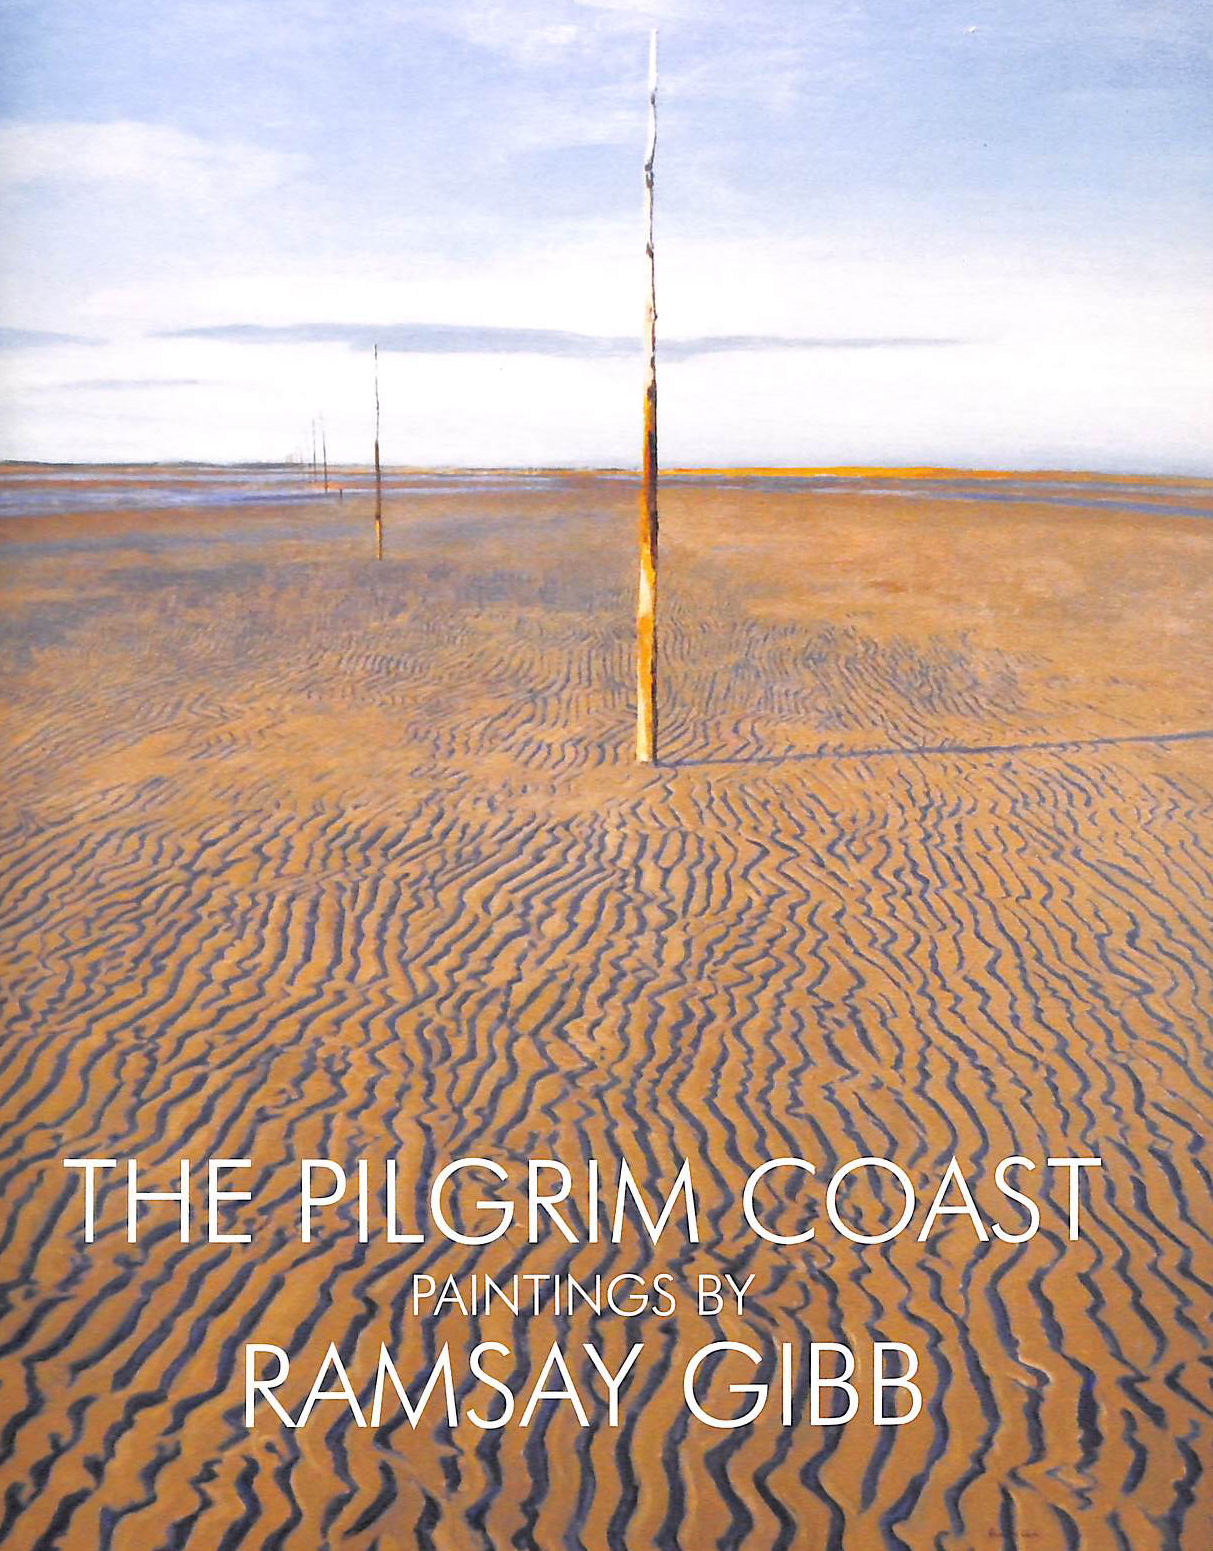 Image for The Pilgrim Coast, paintings by Ramsay Gibb